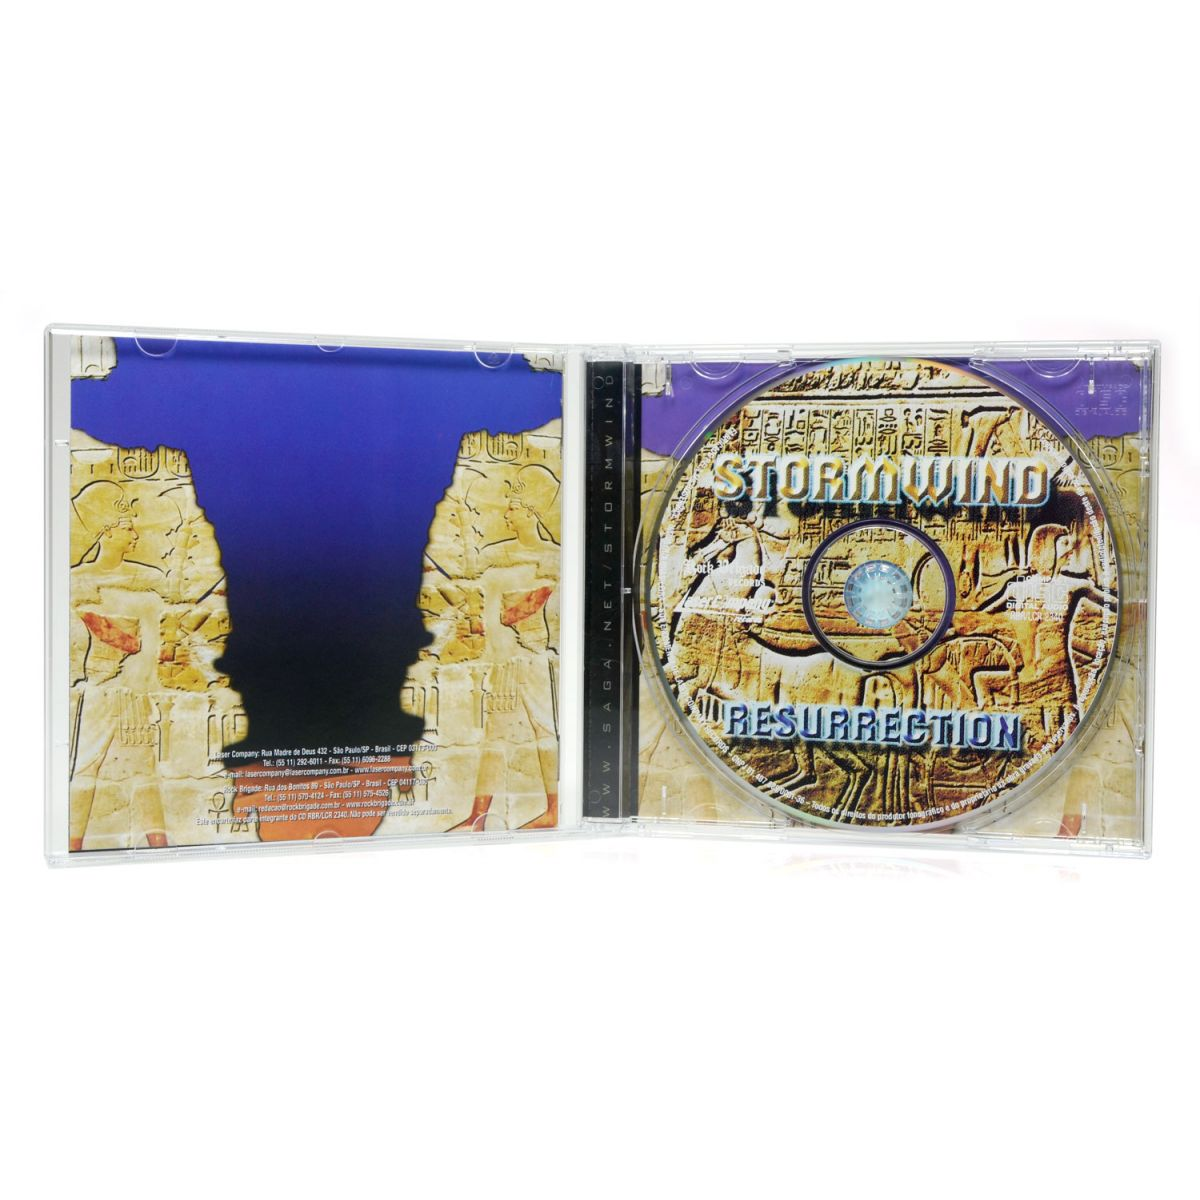 CD Stormwind - Resurrection - Lacrado